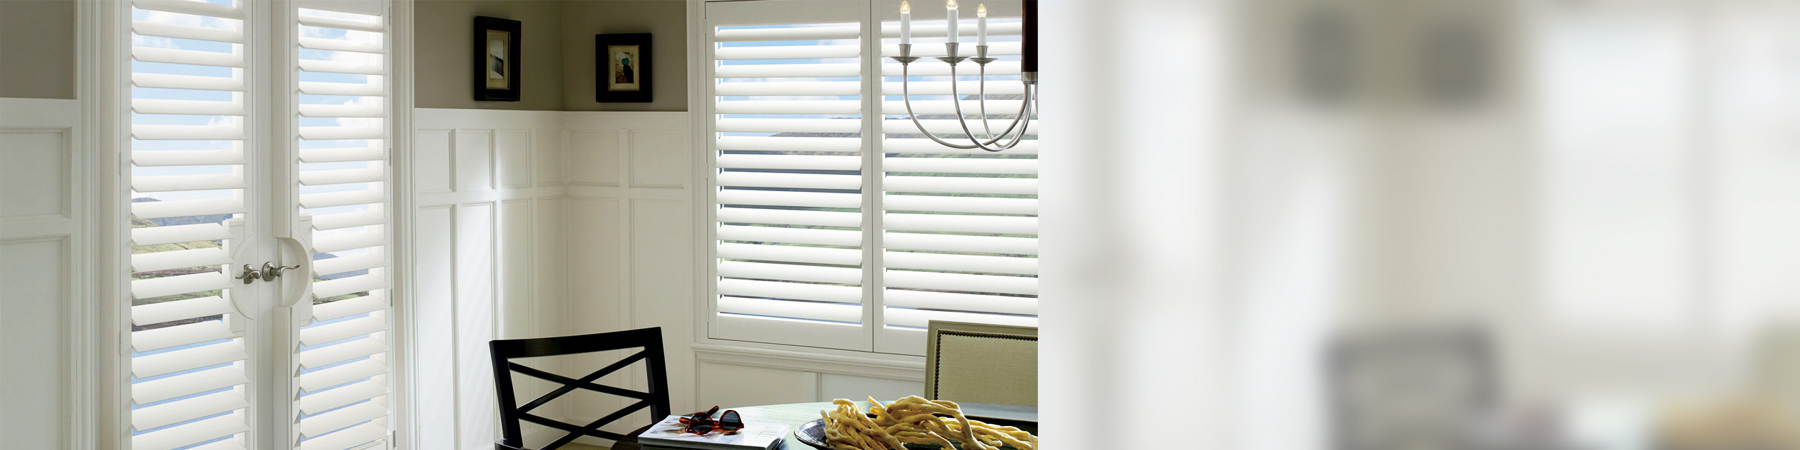 Hardwood Shutters Dayton Ohio